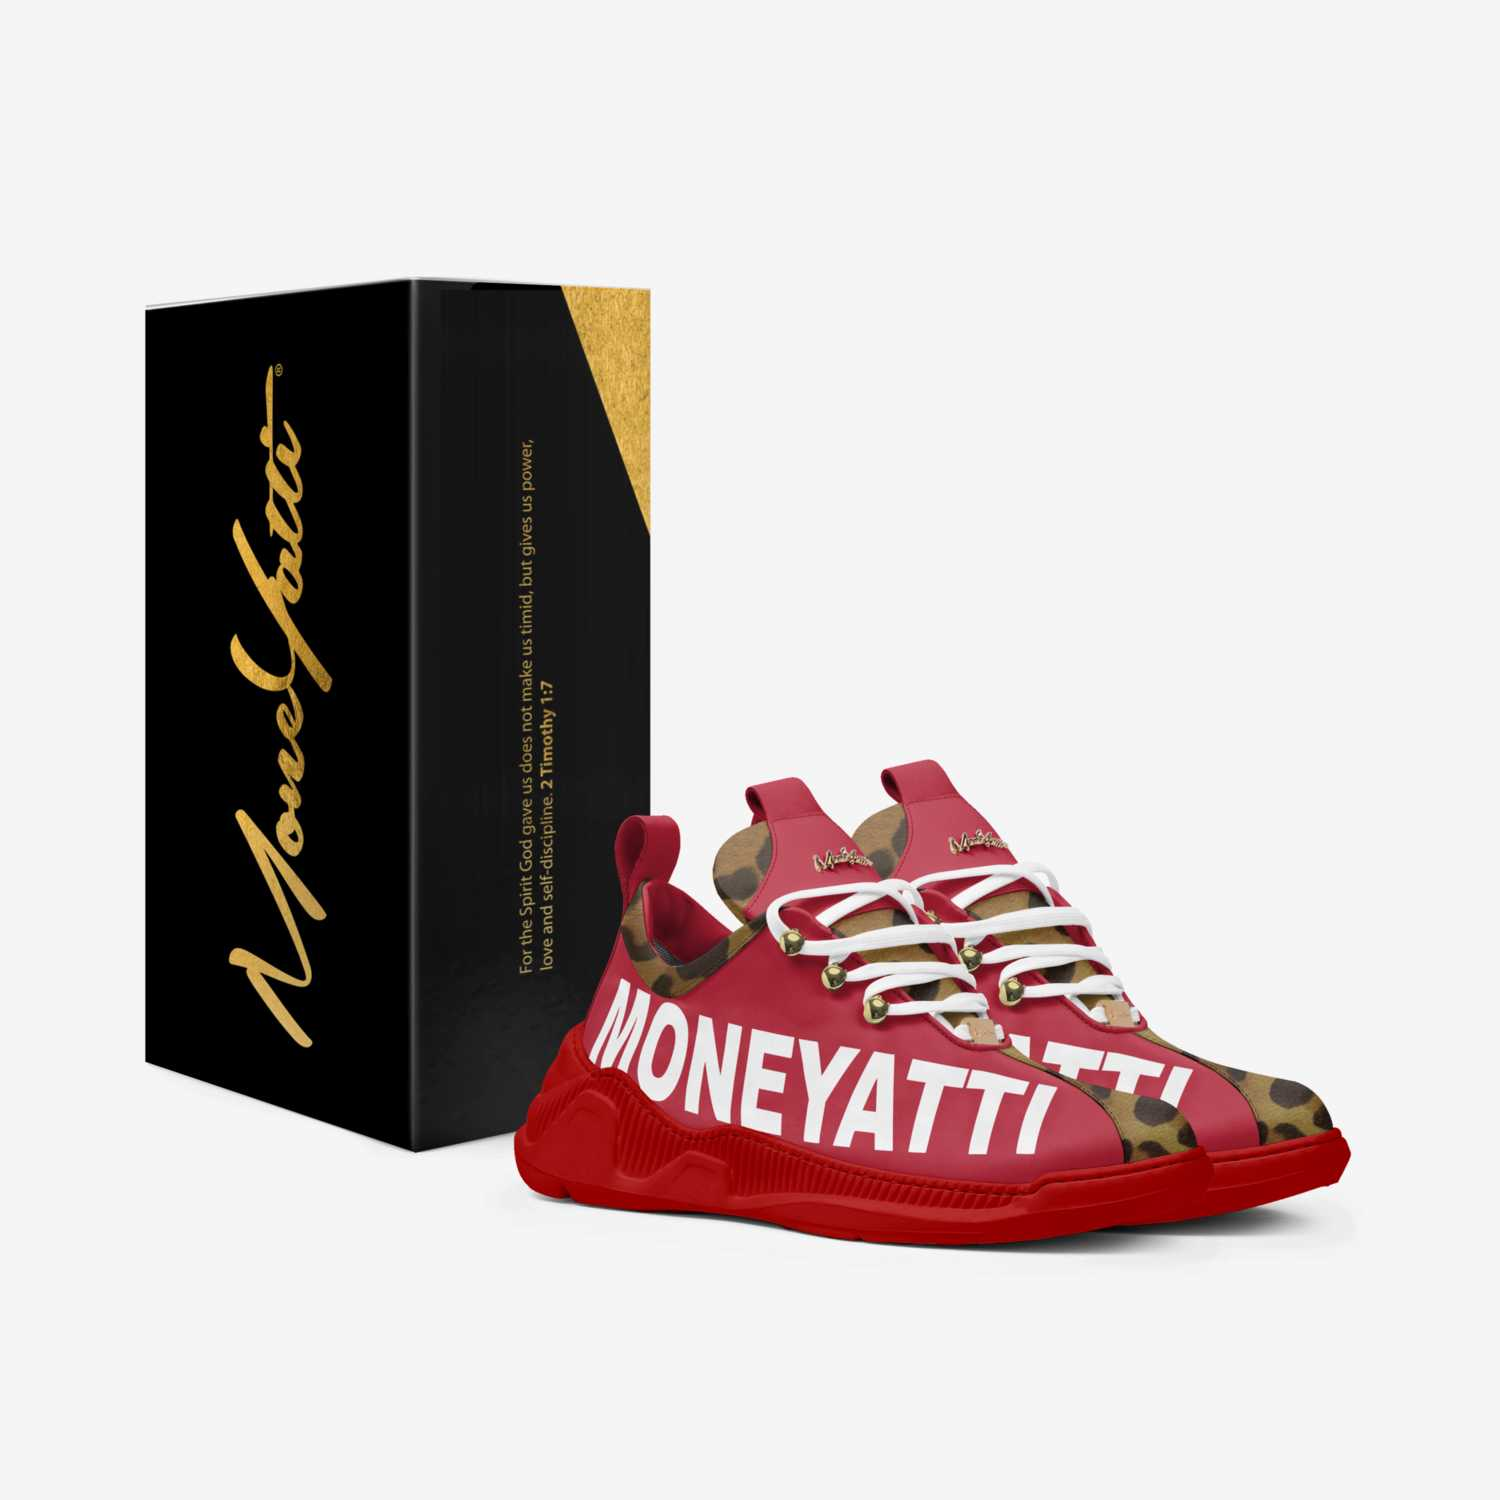 Sig01 custom made in Italy shoes by Moneyatti Brand | Box view